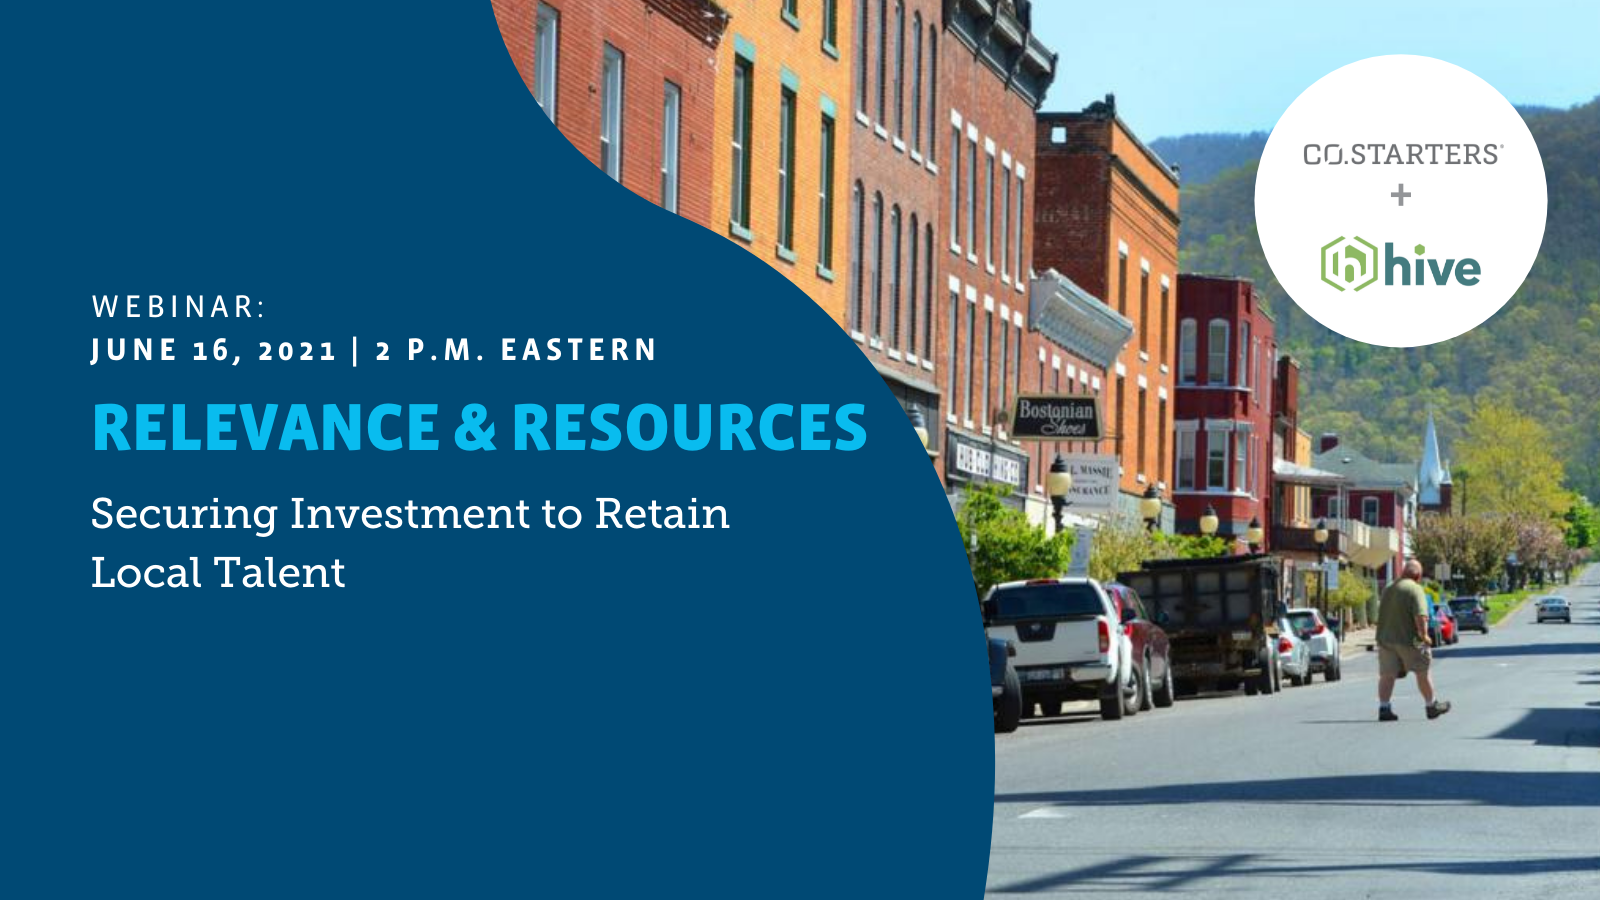 Relevance & Resources: Securing Investment to Retain Local Talent